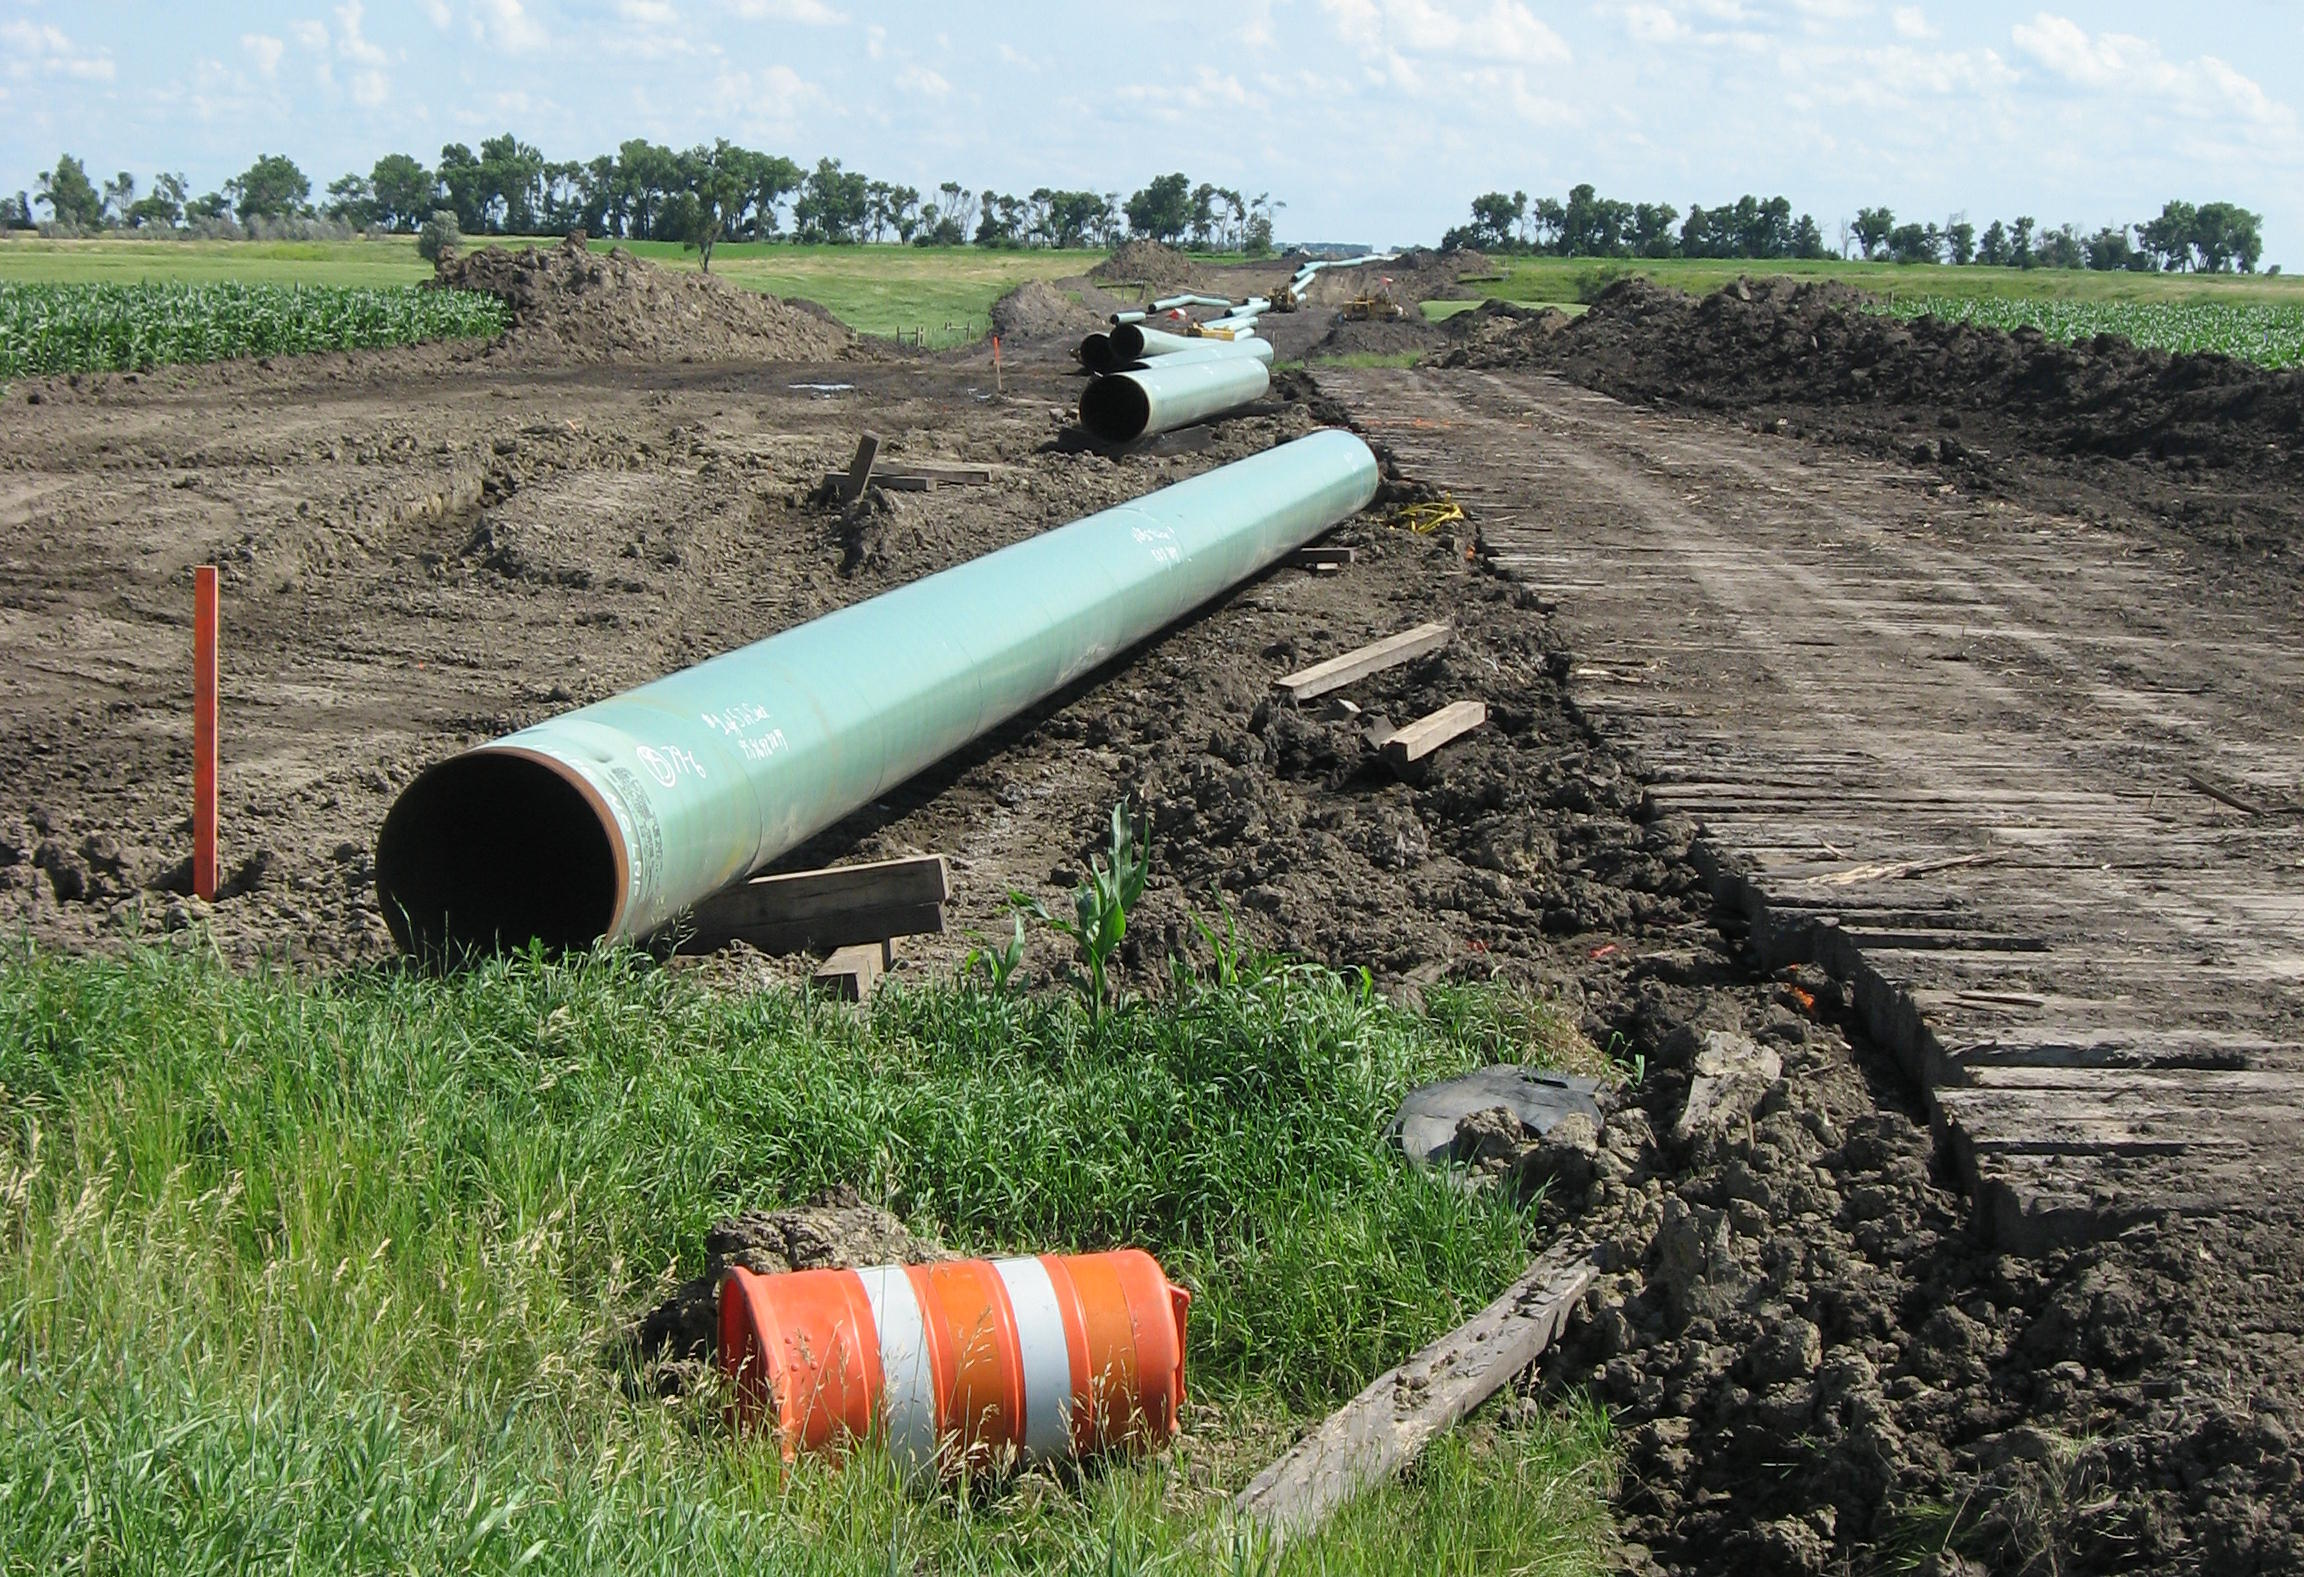 Keystone XL Pipeline Hearings Delayed; New Date TBA | SDPB ...